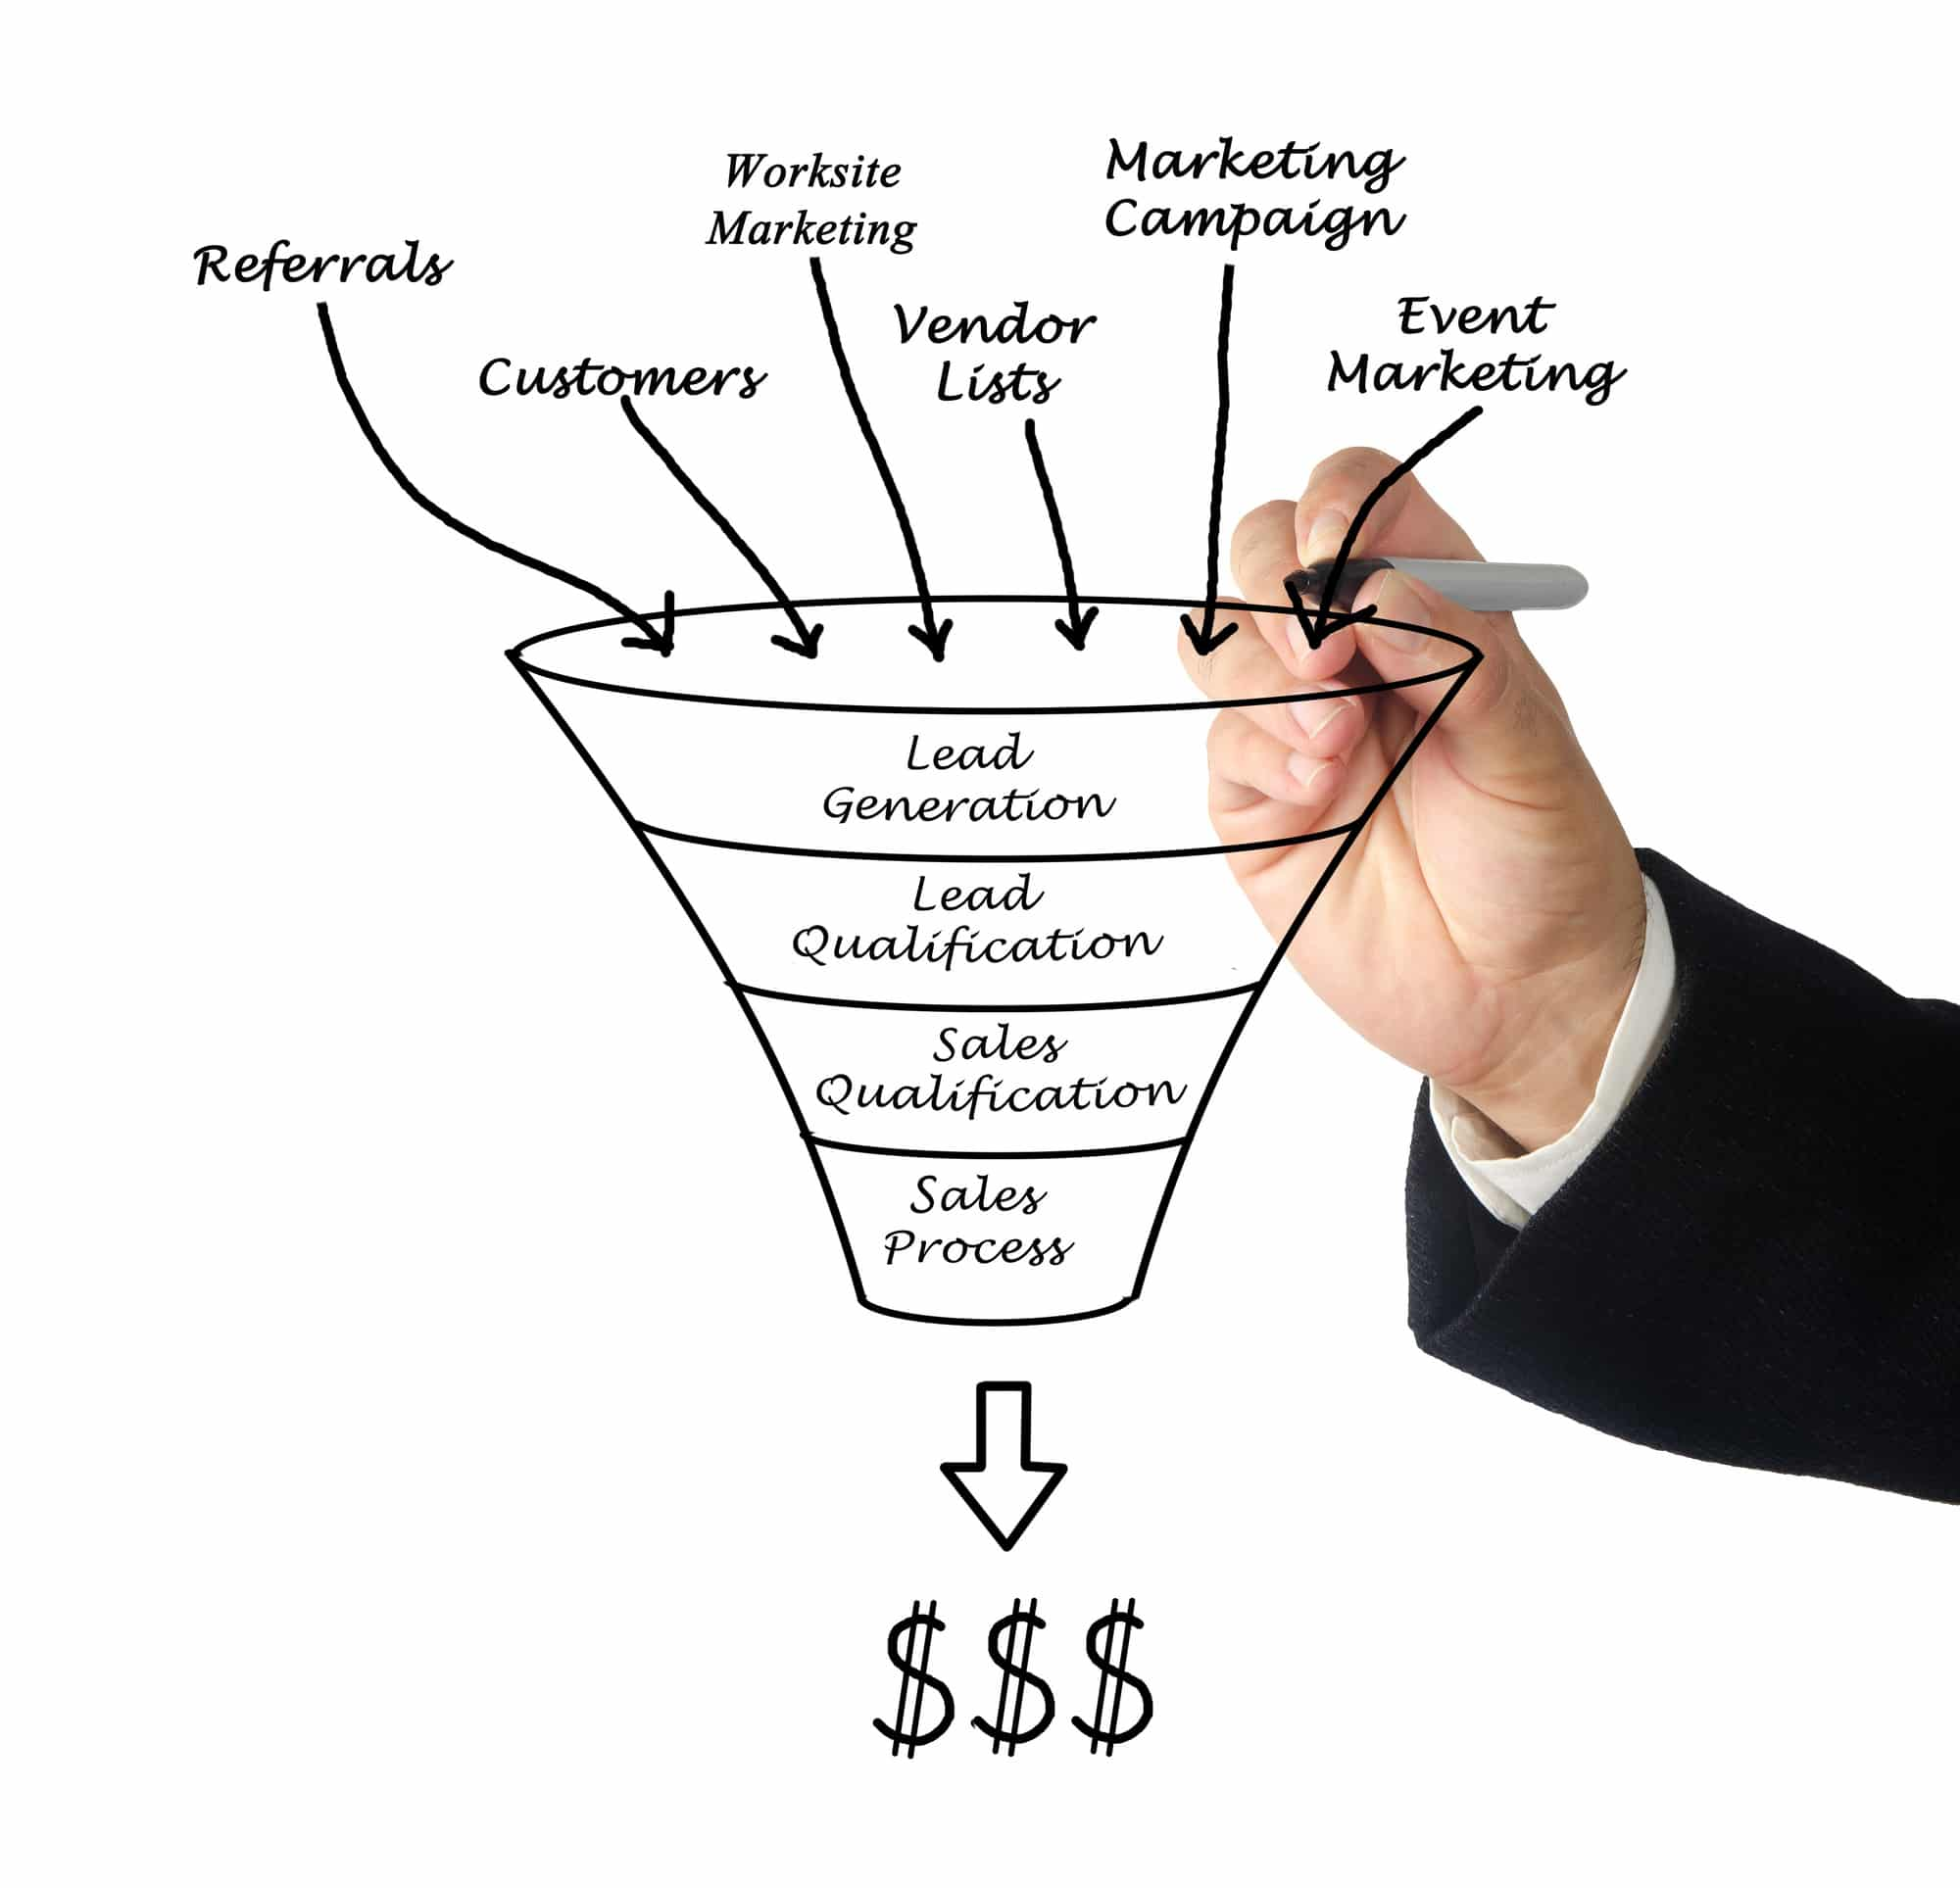 Example of the Digital Marketing funnel